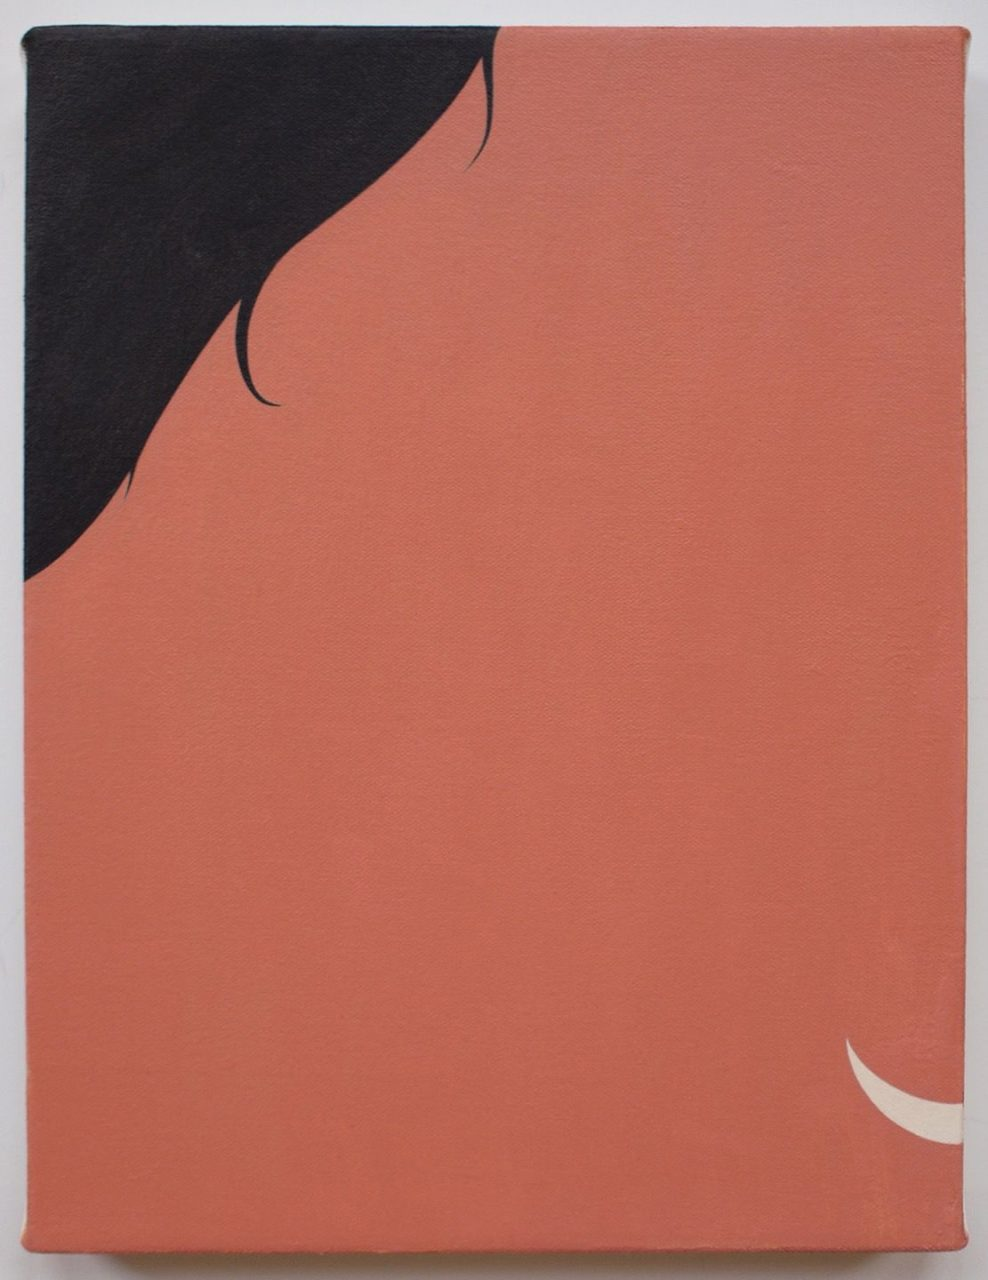 Alice Tippit | Shield, 2017